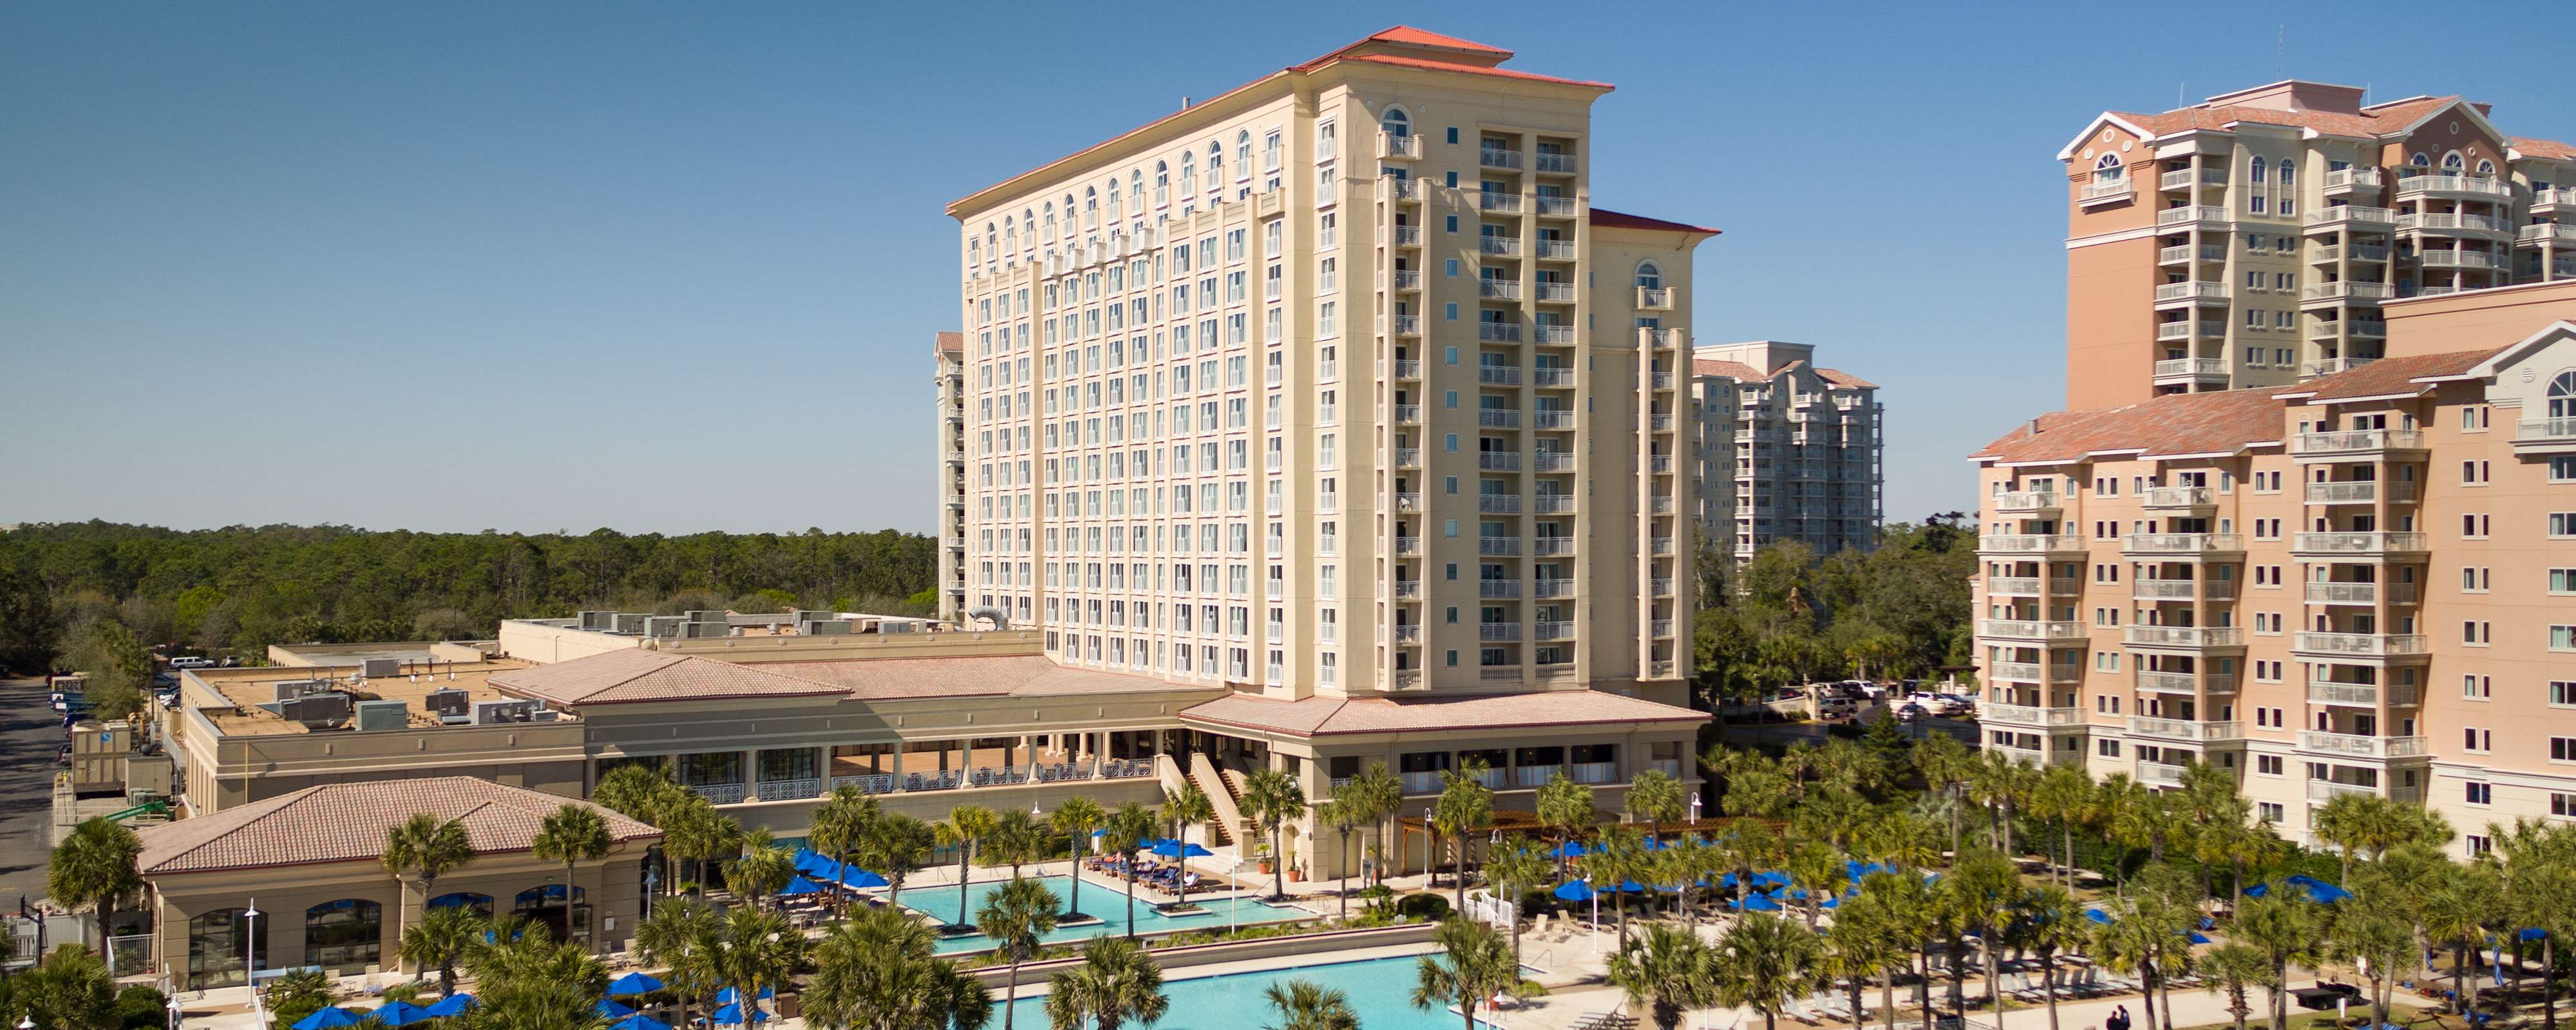 Discover An Oceanfront Luxury Sanctuary For Business Family And Leisure Travelers At Myrtl Myrtle Beach Hotels Myrtle Beach Resorts North Myrtle Beach Hotels